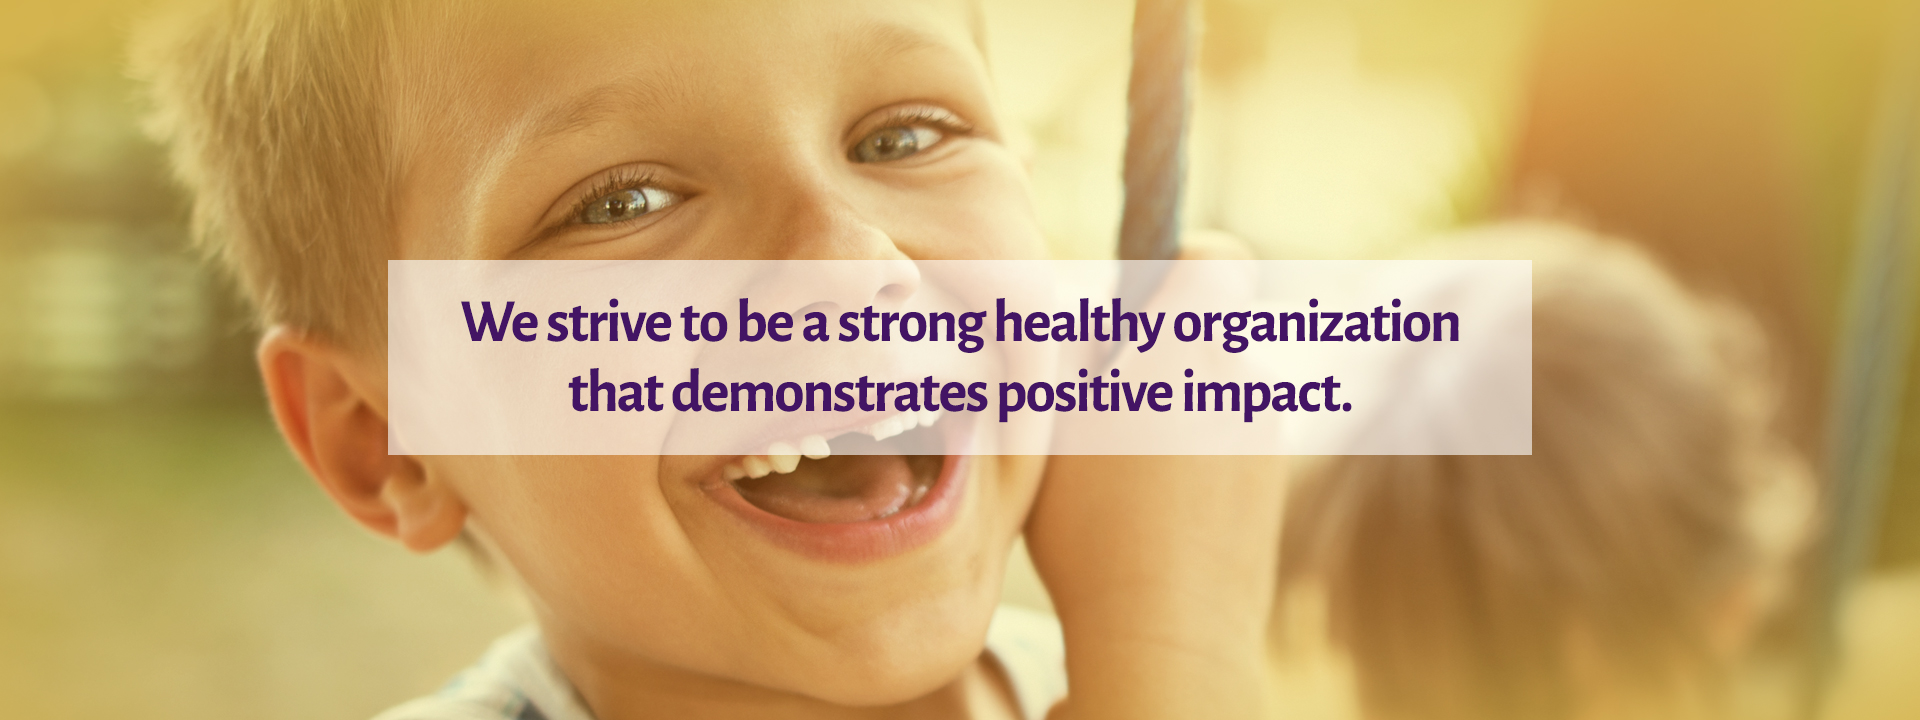 We strive to be a strong healthy organization that demonstrates positive impact.